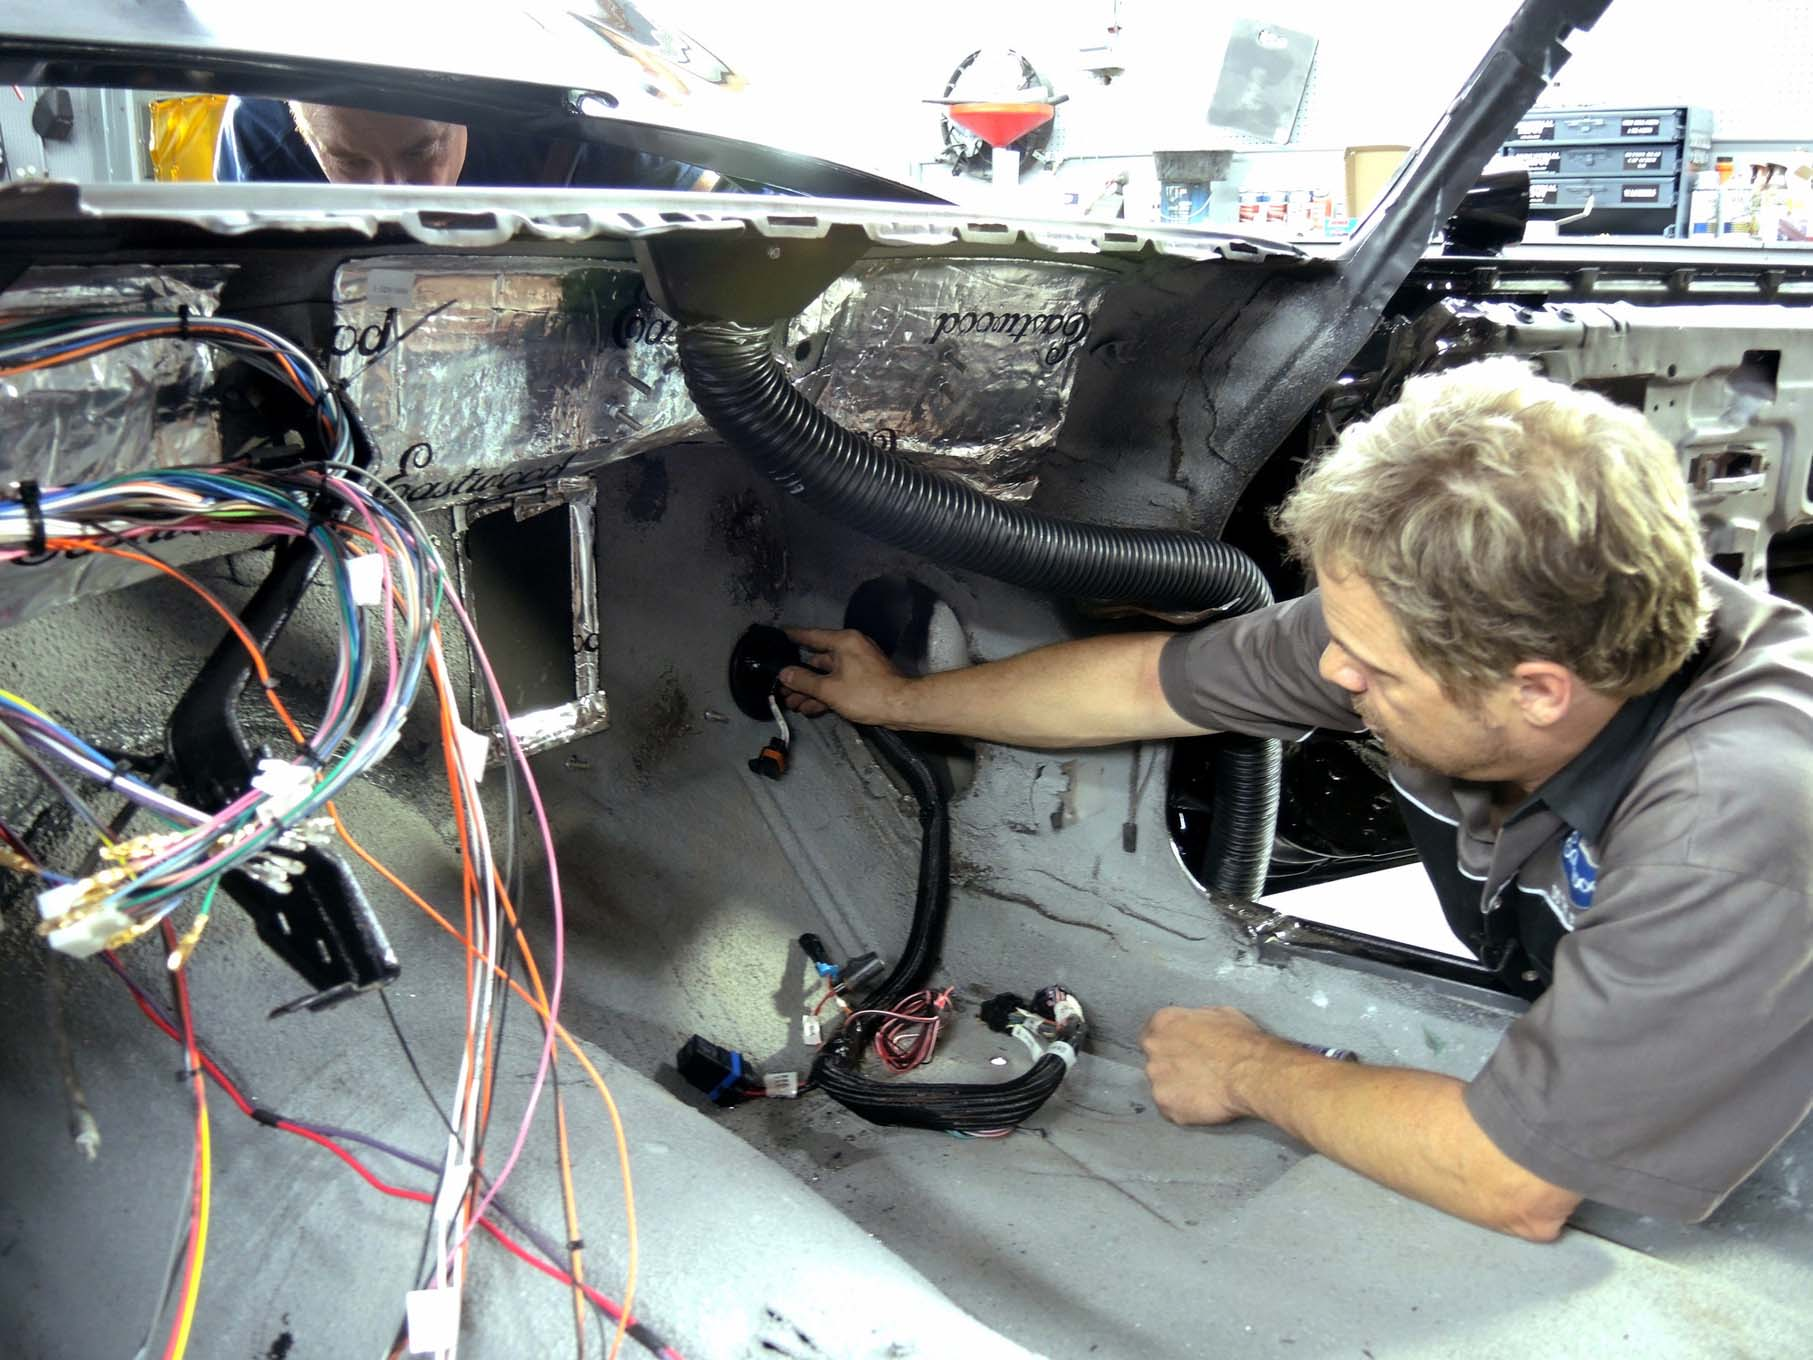 hight resolution of how to rewire a car wiring upgrade for project zedsled car craft s auto wiring shop auto wiring shop